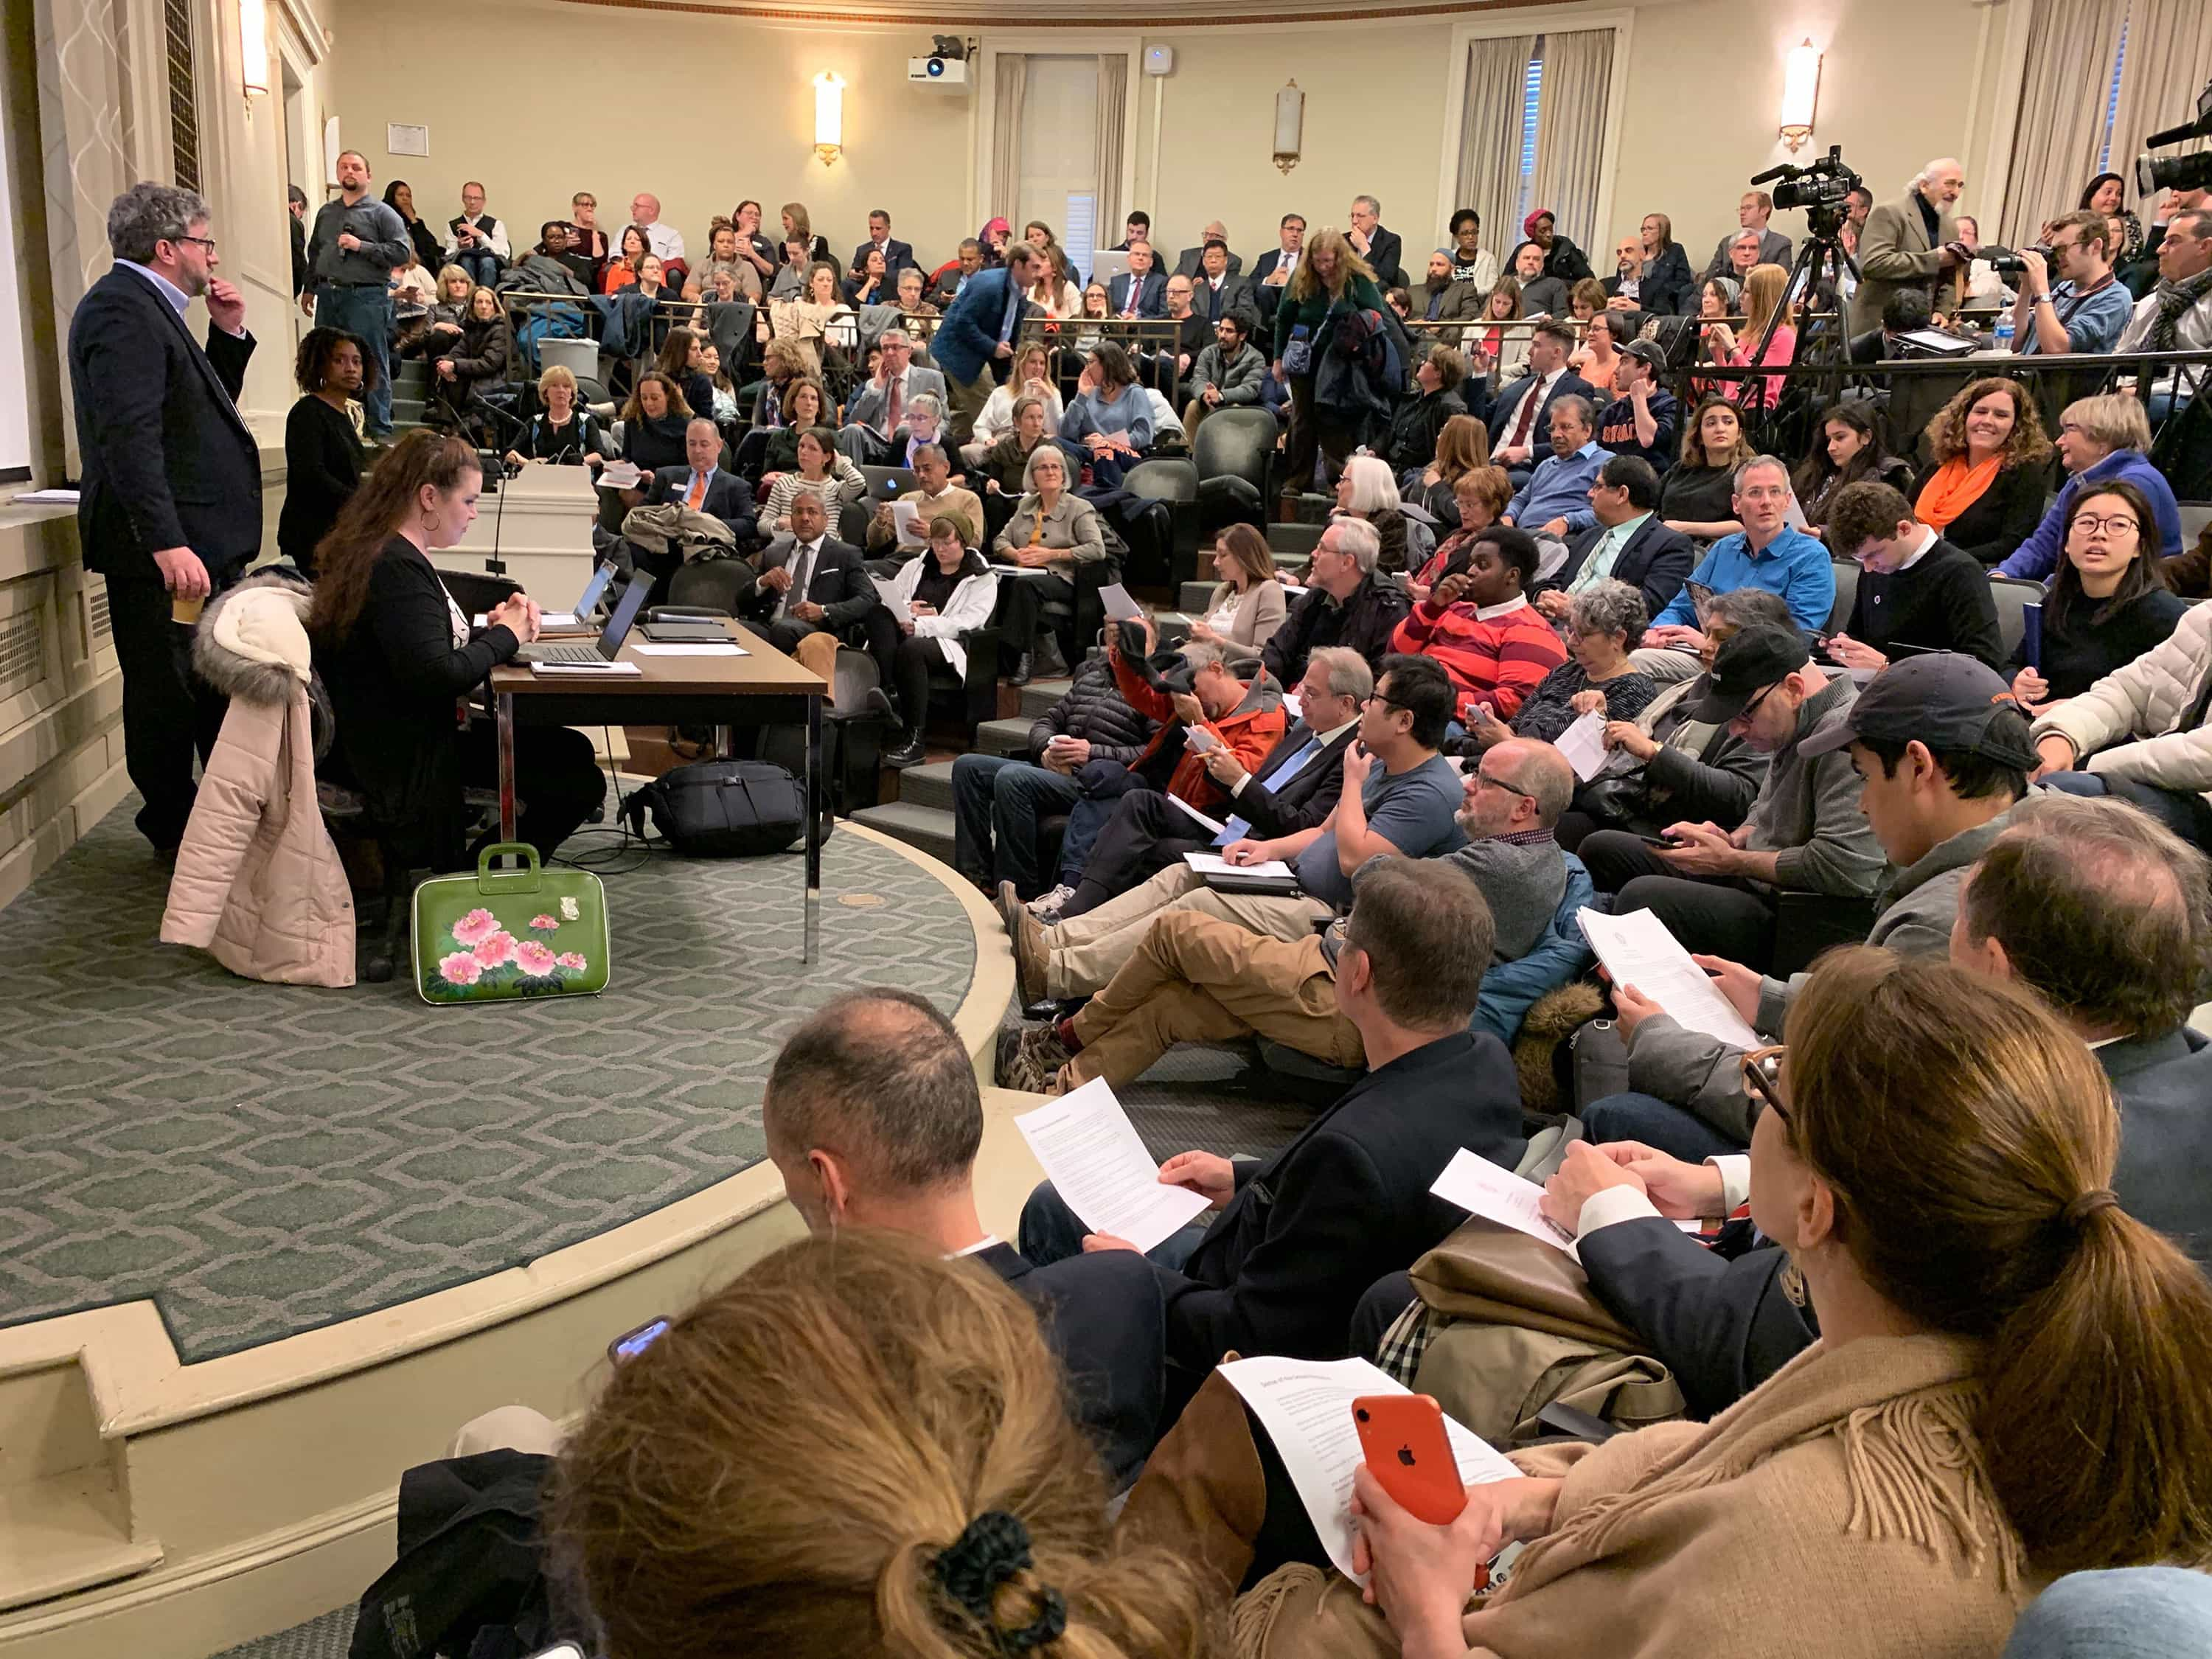 SU faculty members and students packed Maxwell Auditorium on Wednesday for a University Senate meeting to discuss recent campus controversies.